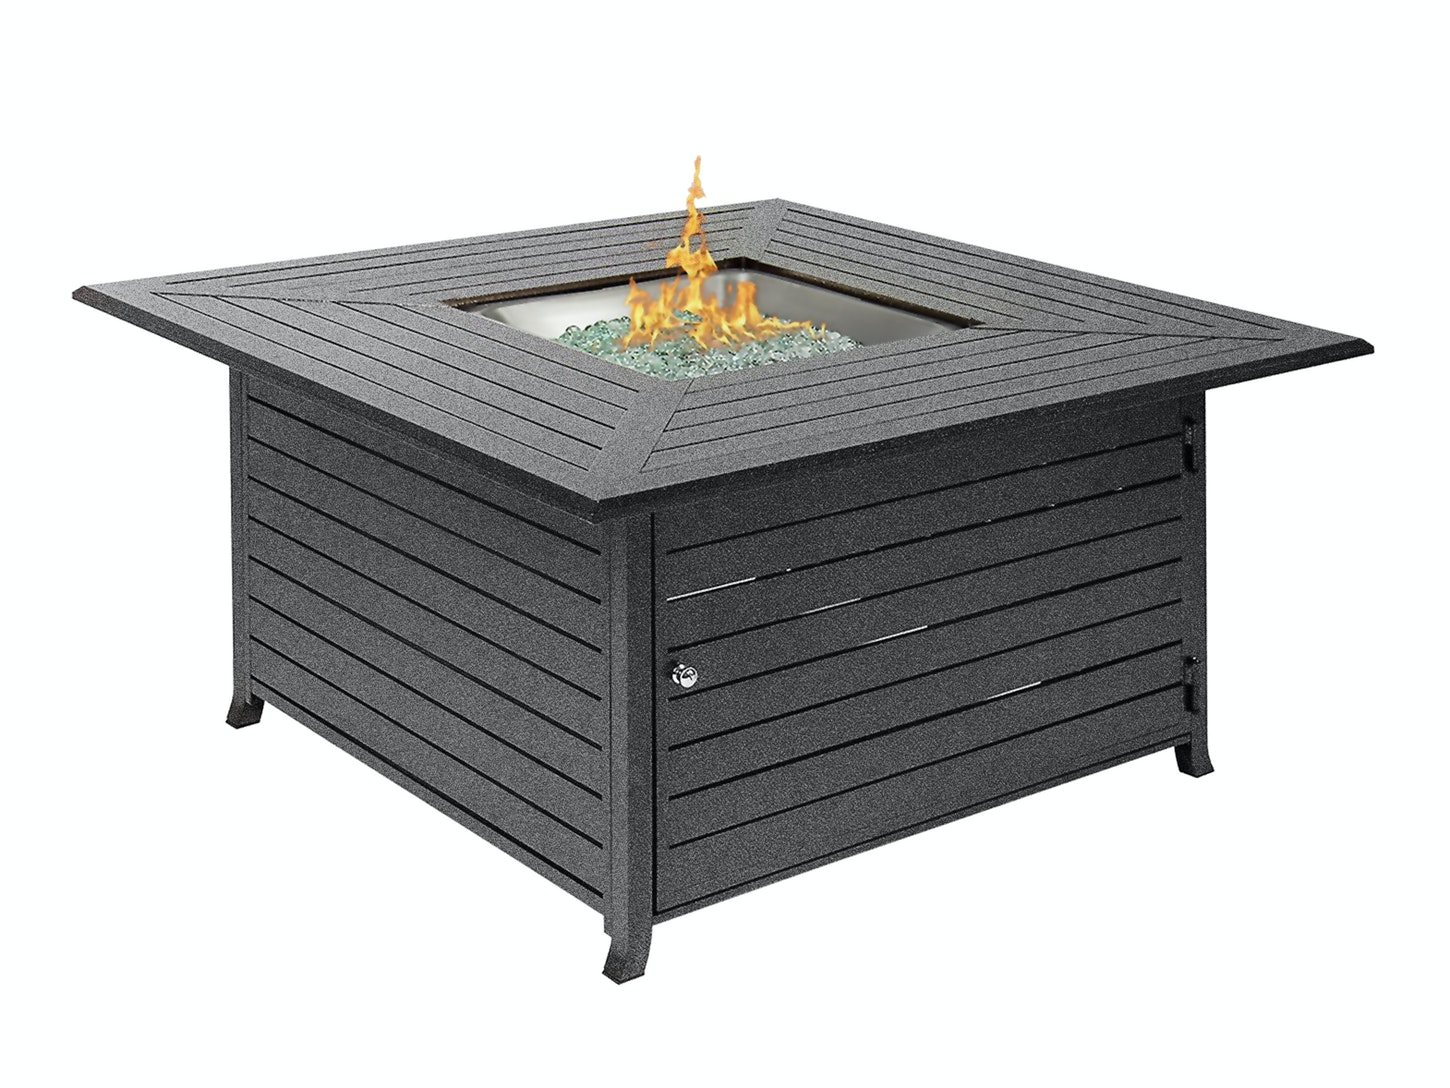 Hideaway aluminium gas fire pit table gas outdoor heaters heating cooling home outdoor living trade tested